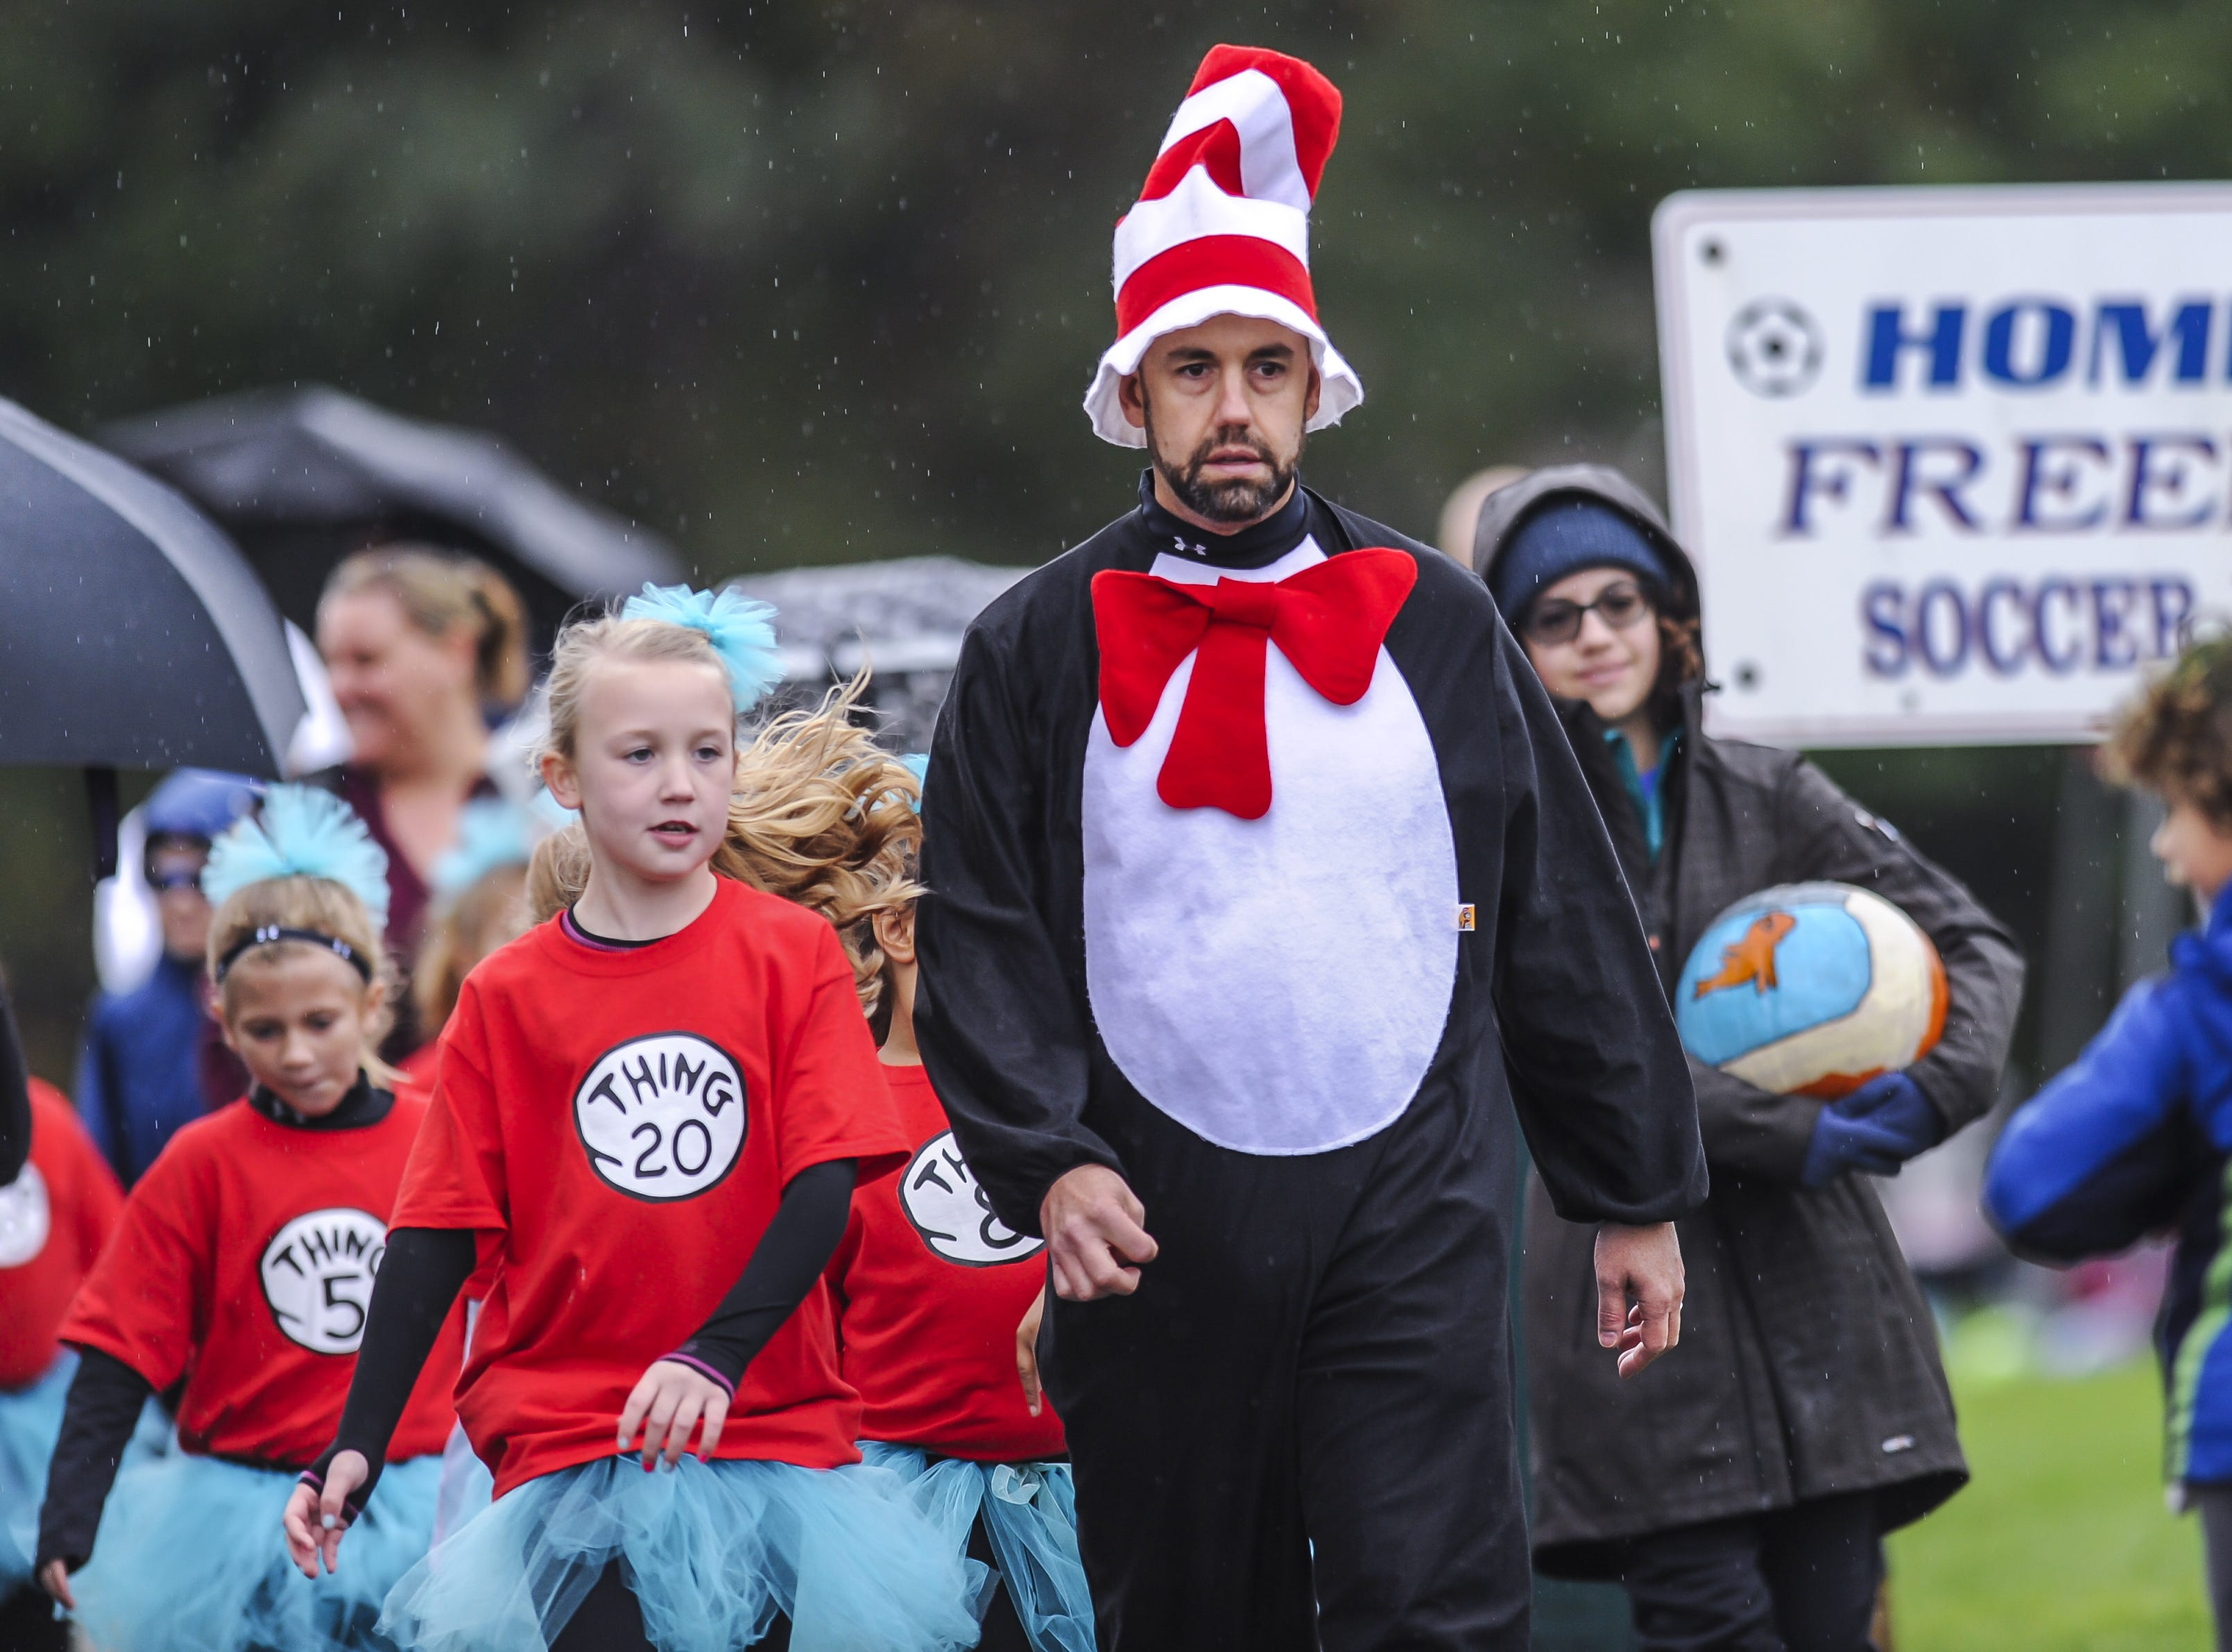 Head coach Rob Smith of the Jackson Vipers, wearing a Cat In the Hat costume at Michael J. Tighe Park in Freehold on Oct. 13, 2018. Freehold Soccer League hosted their 20th Halloween-themed Fright Fest Tournament where teams wear Halloween costumes as uniforms and the fields are decked out with spooky decorations.